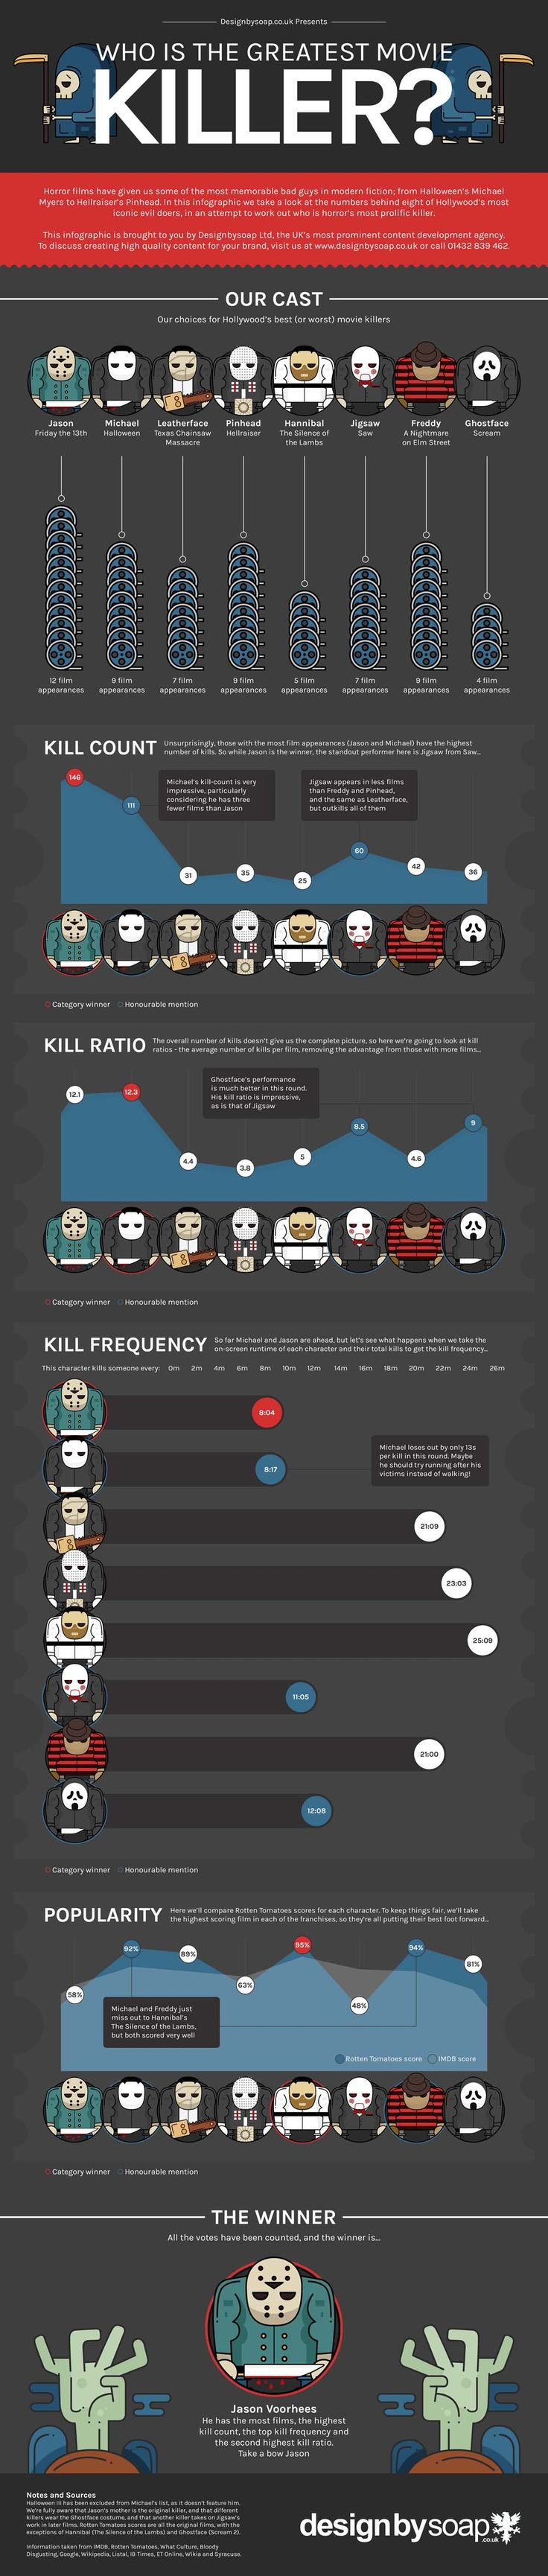 Who Is The Greatest Movie Killer? #Infographic #Movies